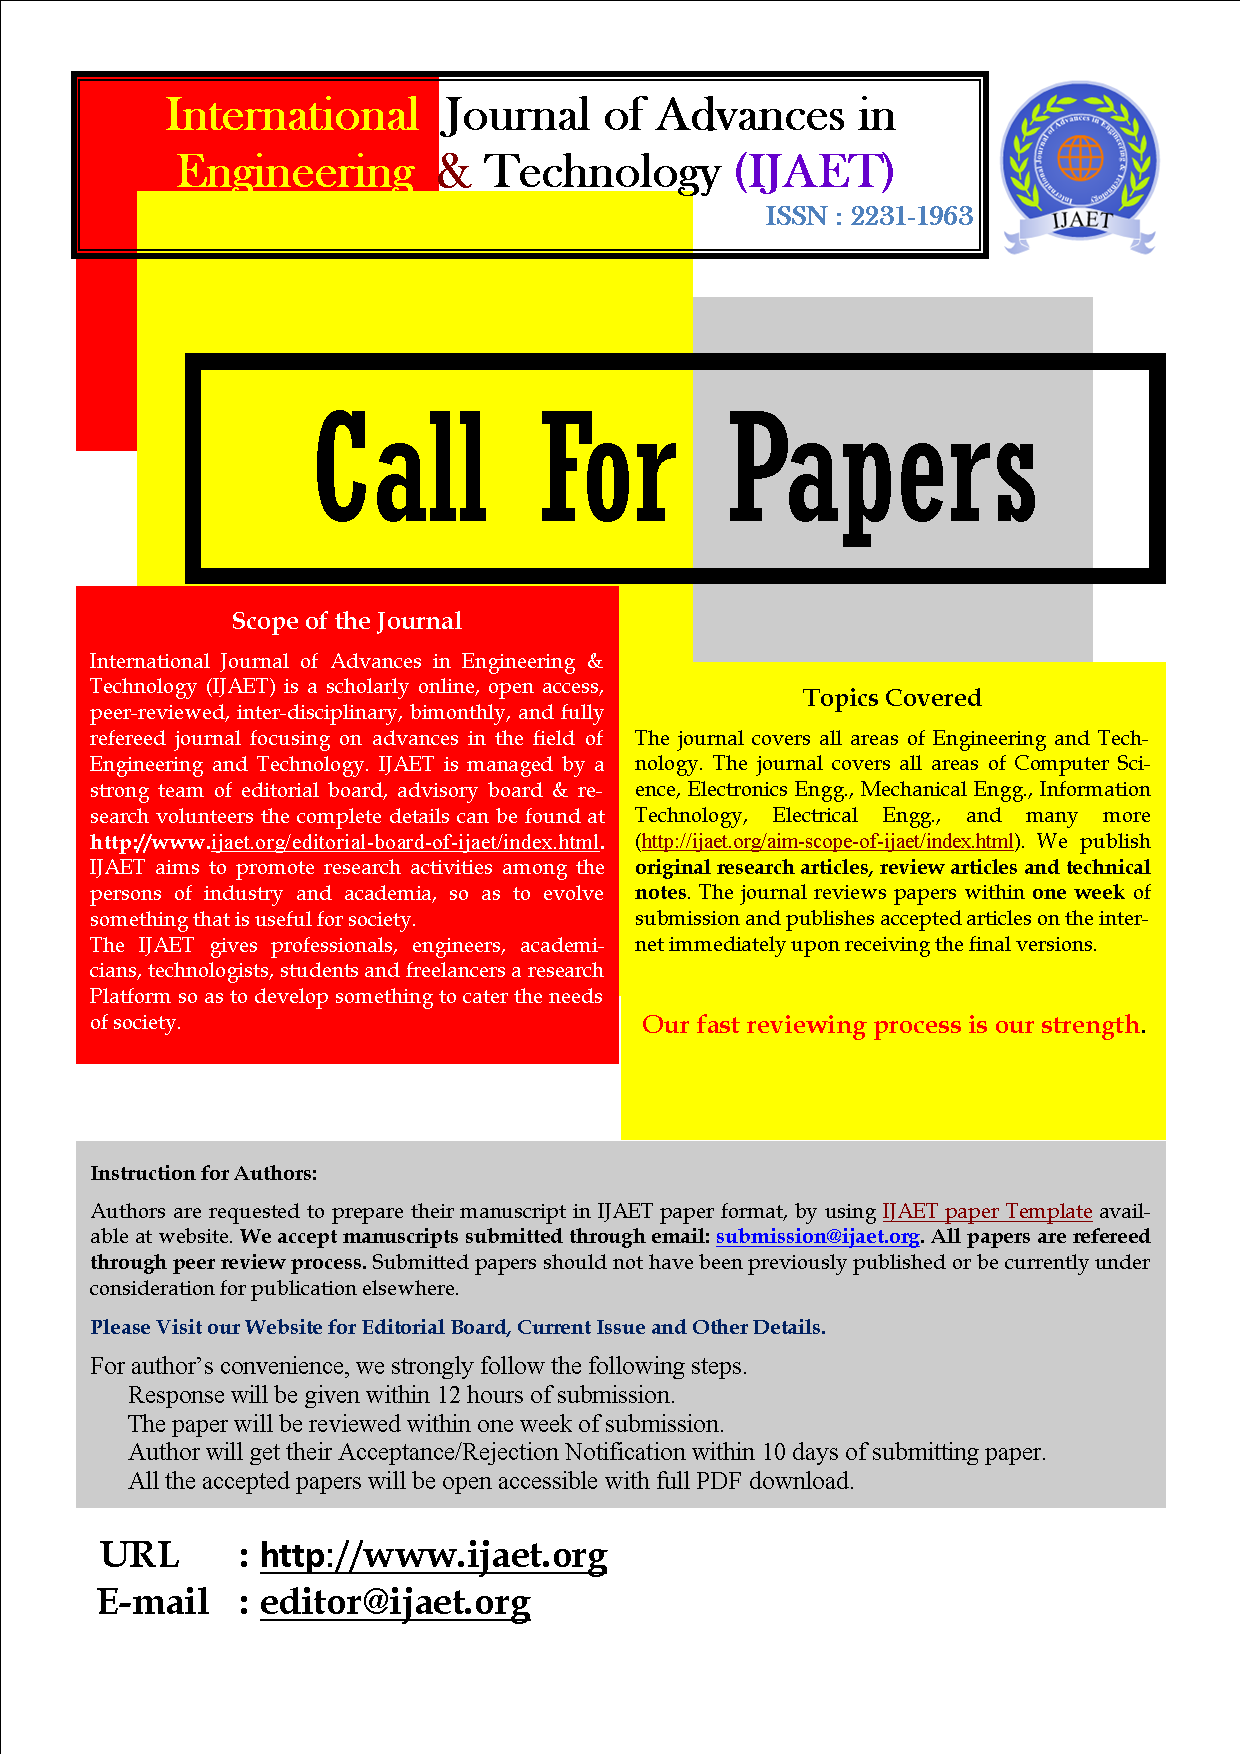 Call for Paper Journal | Call for Papers IJAET | Journal paper